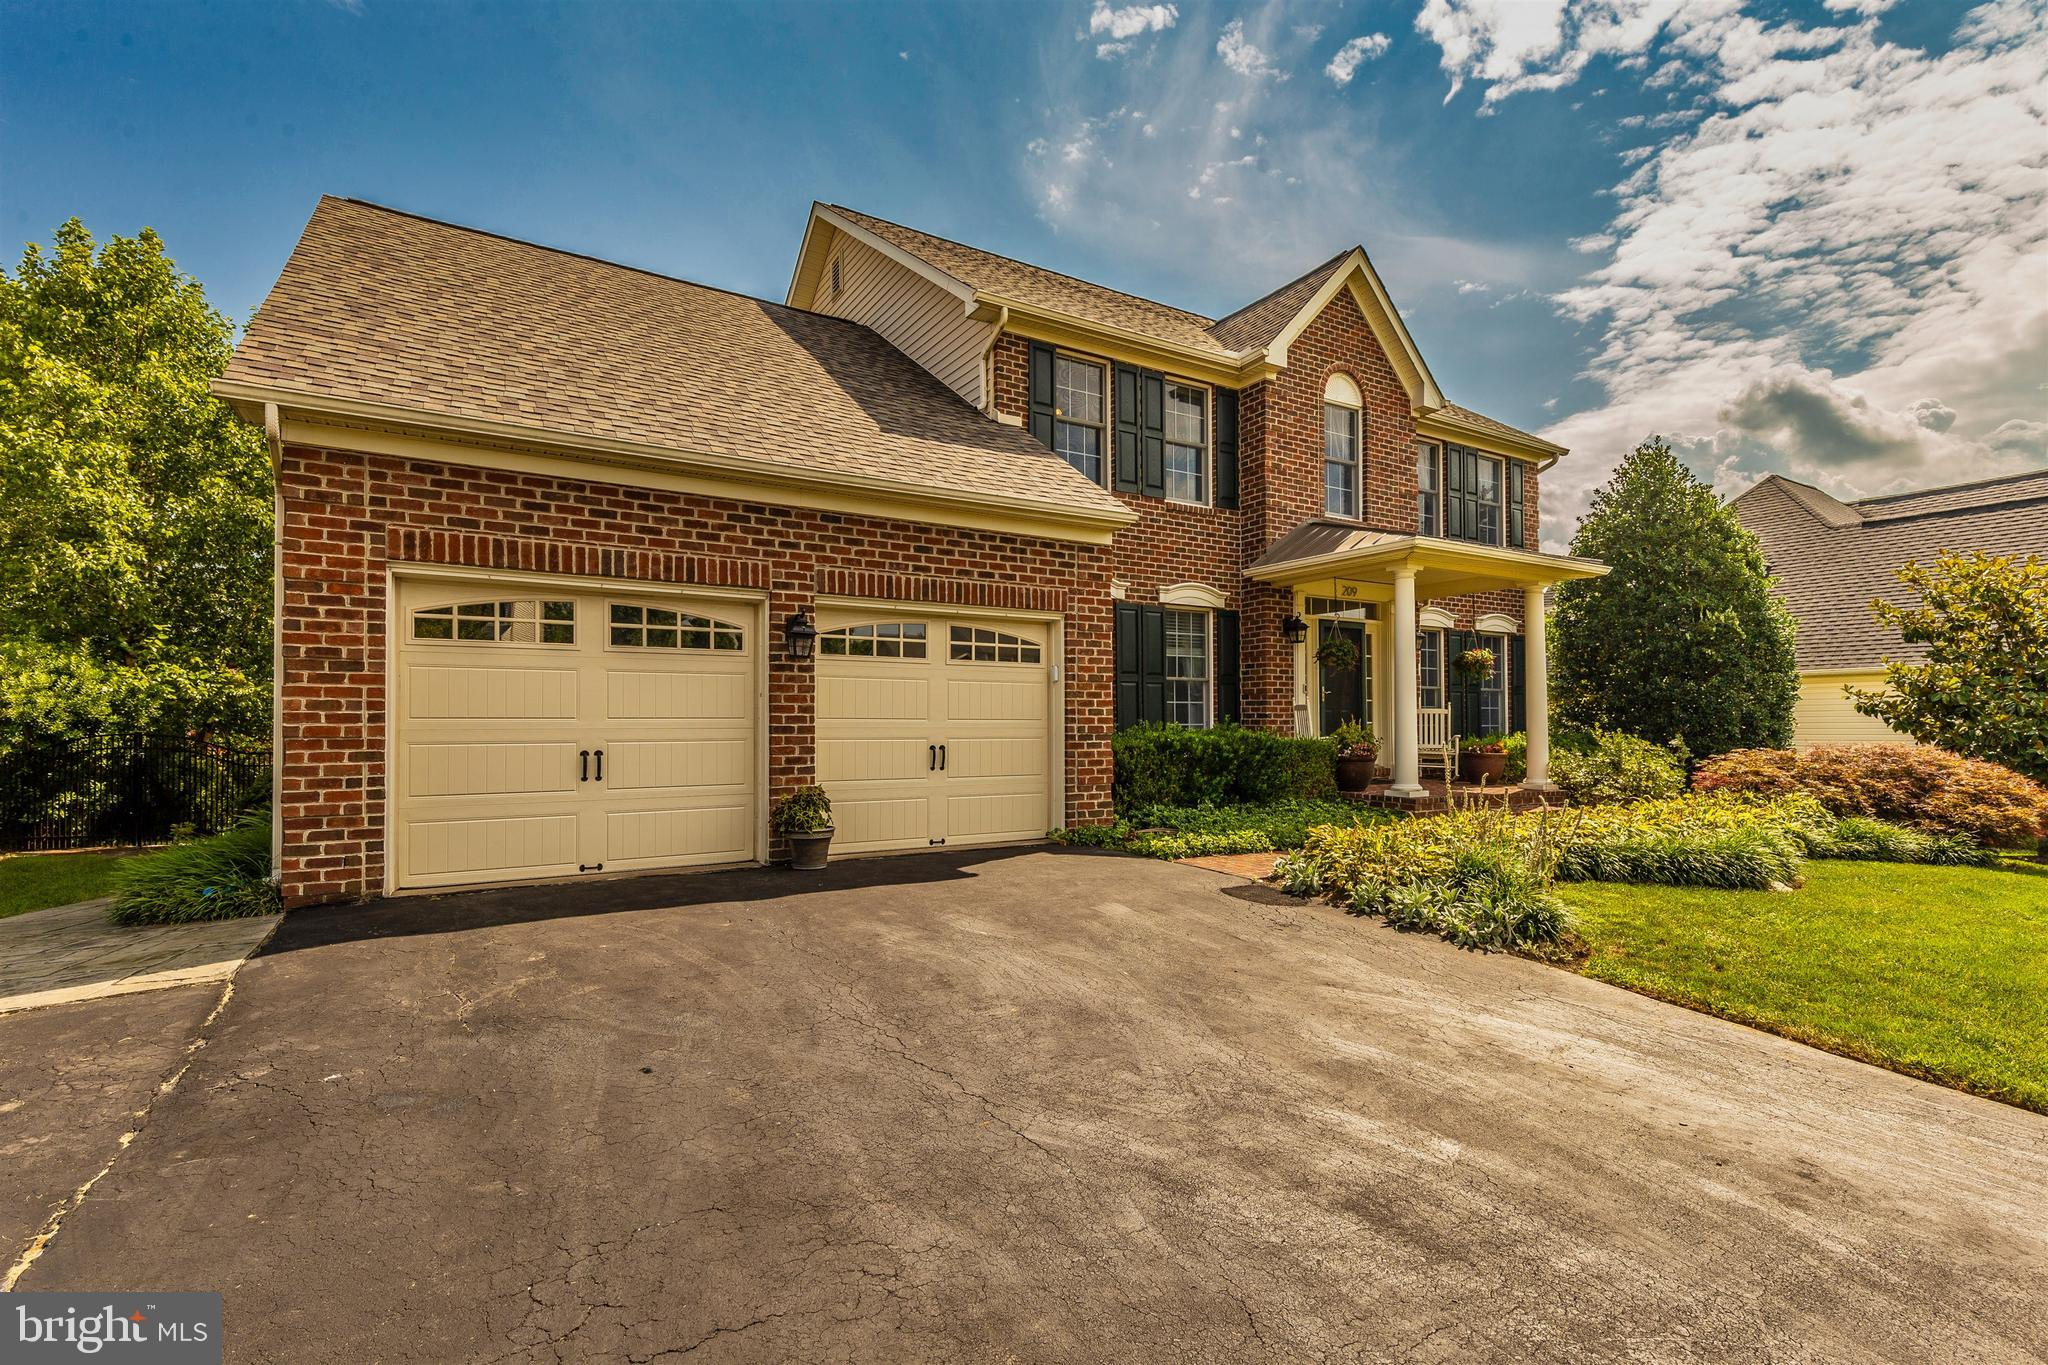 209 Rod Circle, Middletown, MD 21769